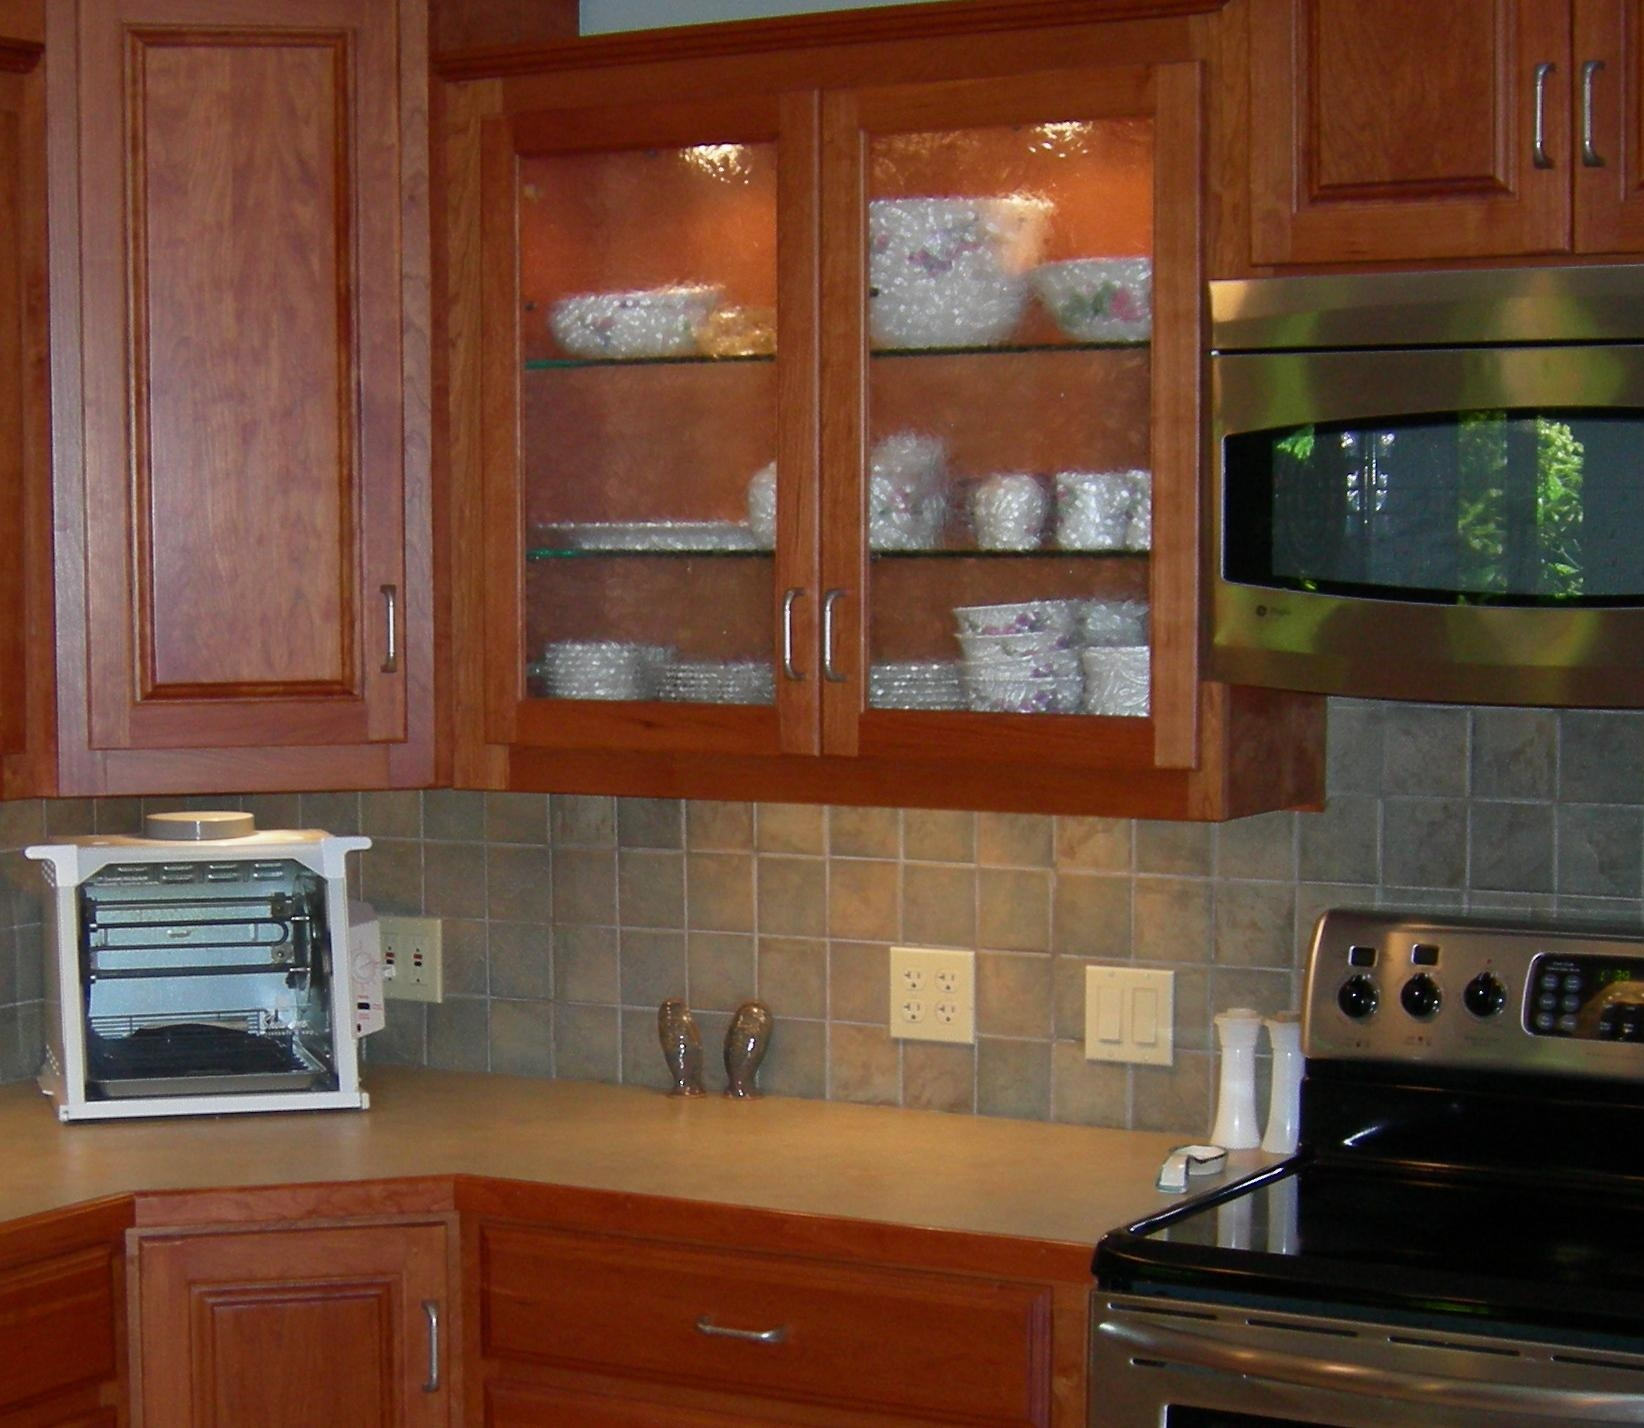 Glass Shelves Kitchen Cabinetskitchen curved glass kitchen cabinet shelves aside wall mounted microwave oven modern glass kitchen cabinet shelves get rid of small items for best outlook